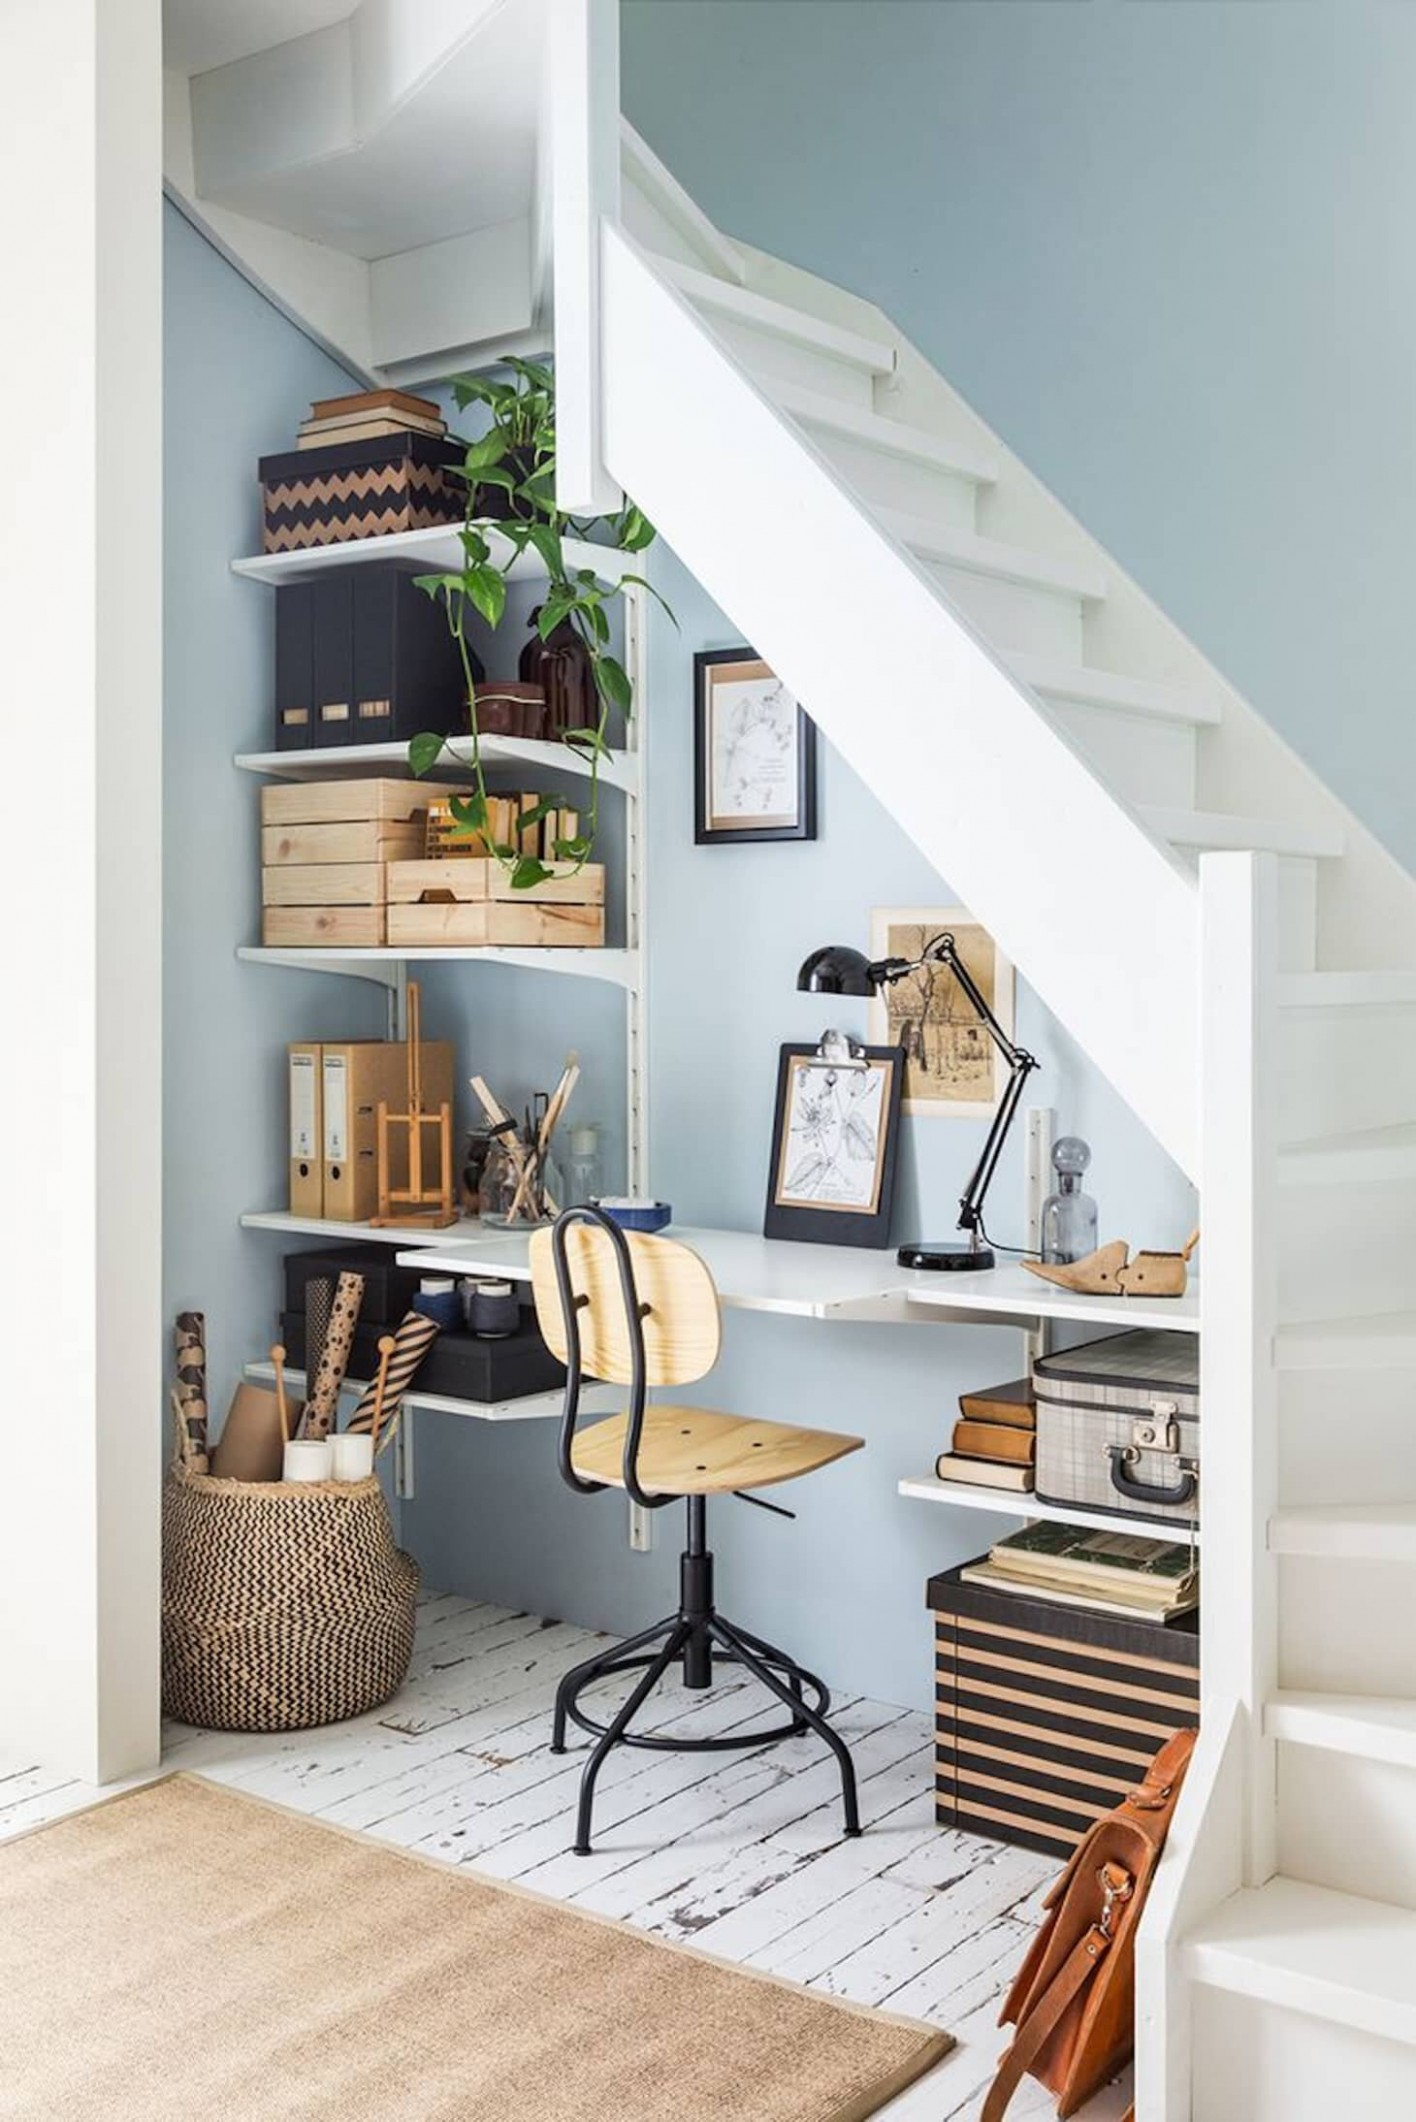 12+ Inspiring Small Home Office Ideas — THE NORDROOM - Home Office Ideas Loft